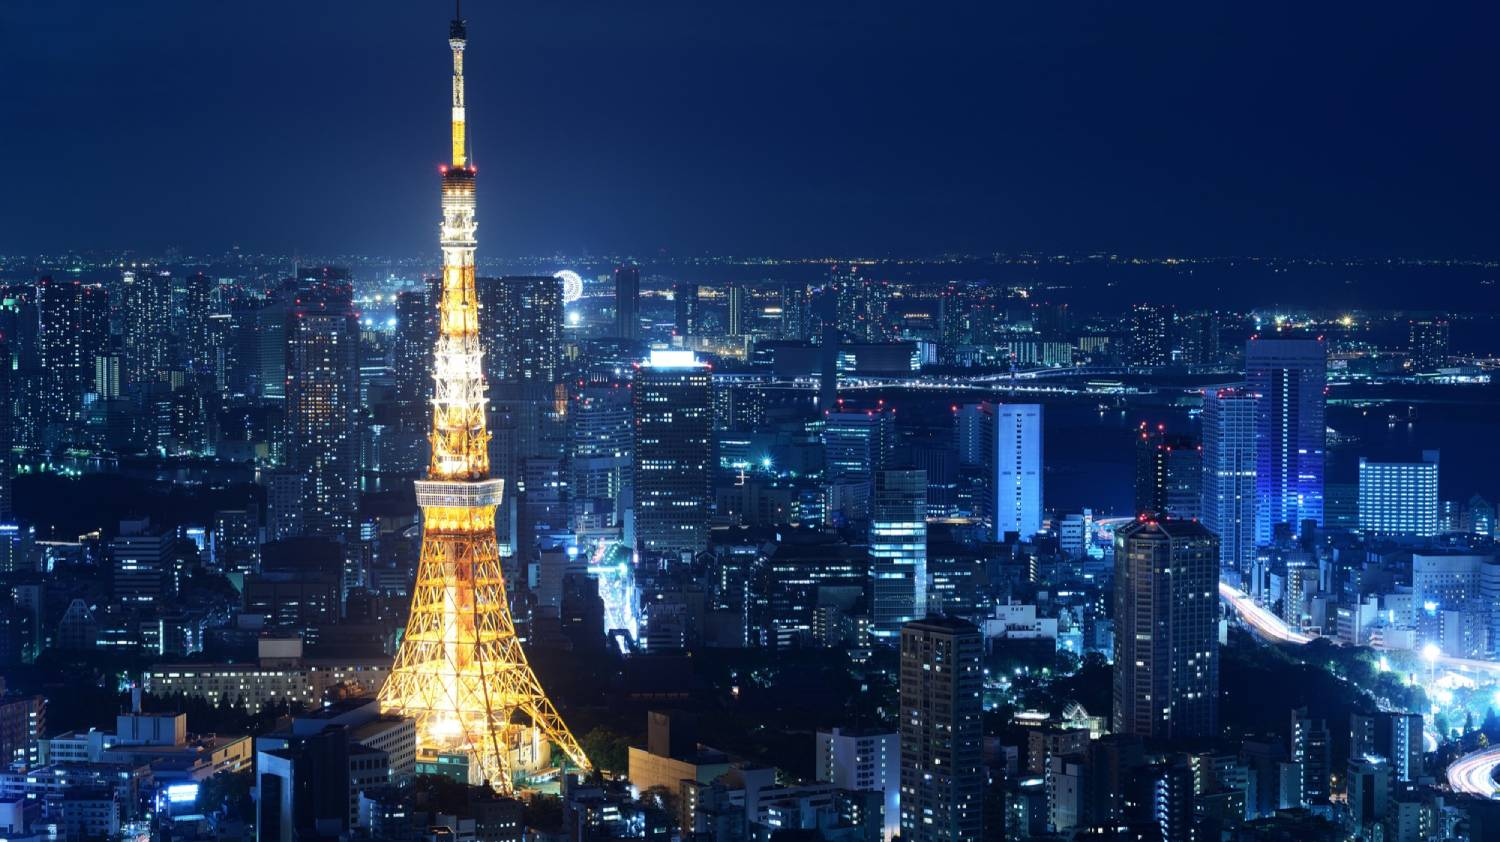 Tokyo Tower - Things To Do In Tokyo